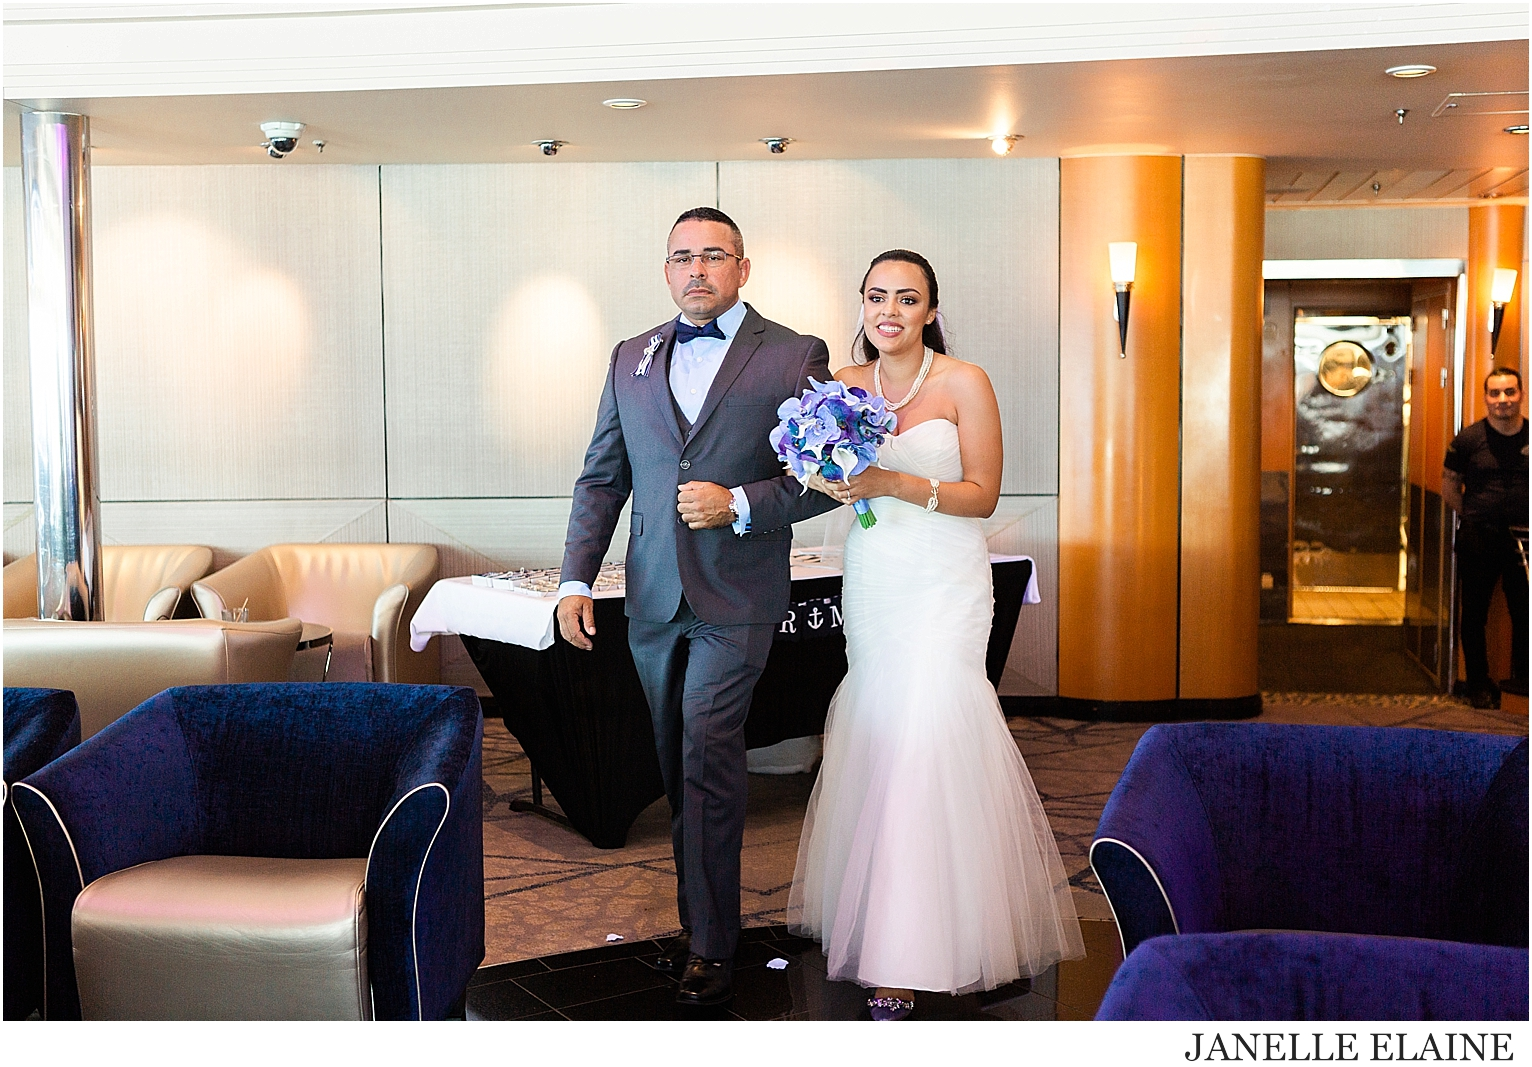 white wedding-royal caribbean-janelle elaine photography-350.jpg